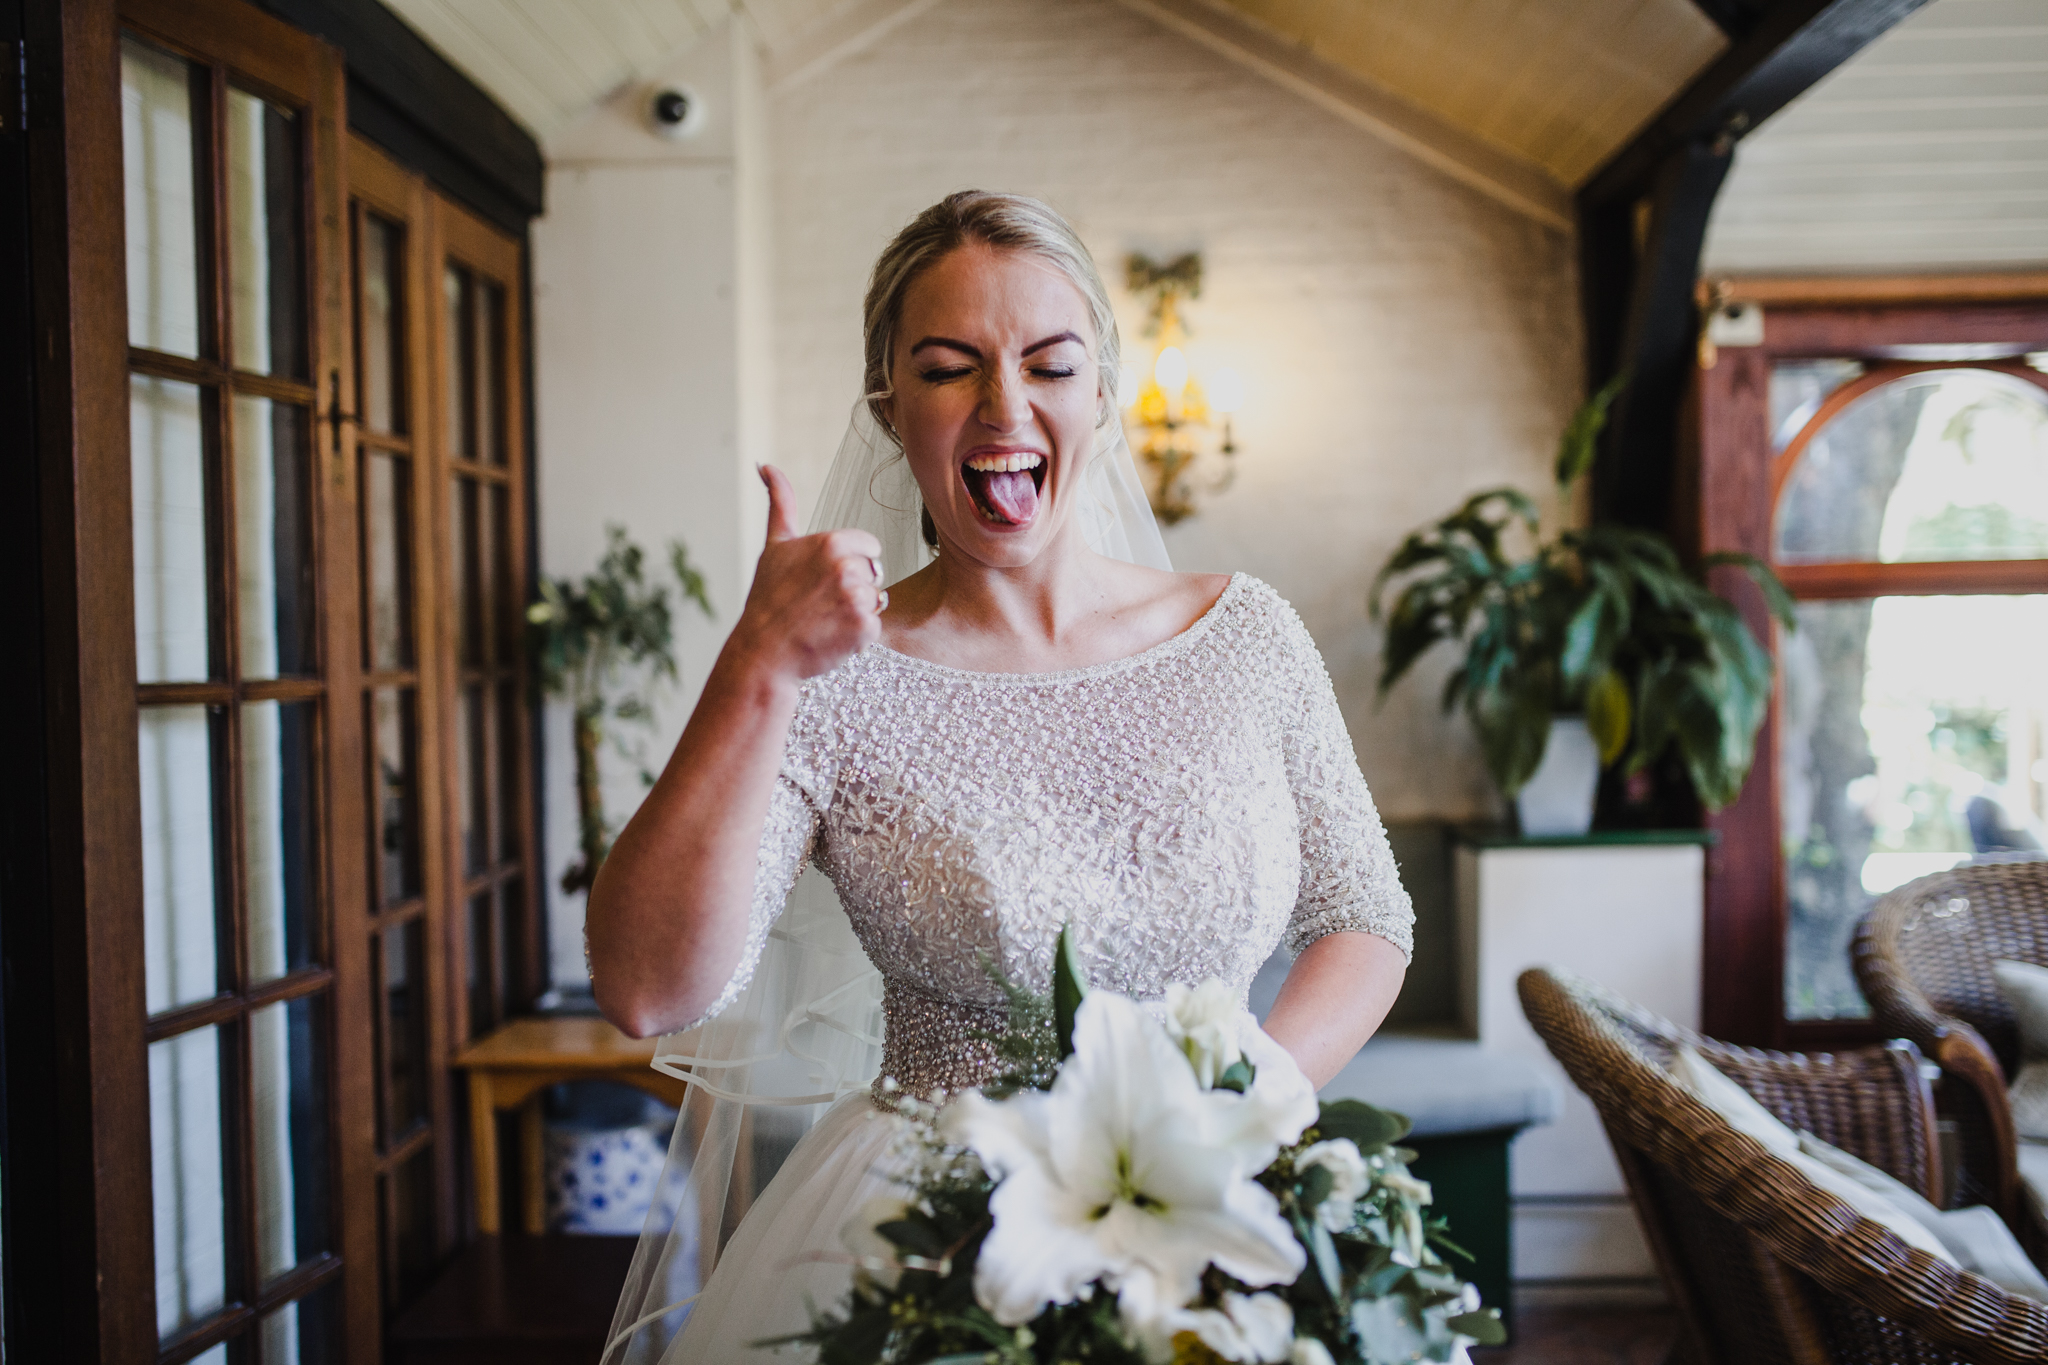 Bride pulling a fun face before the wedding